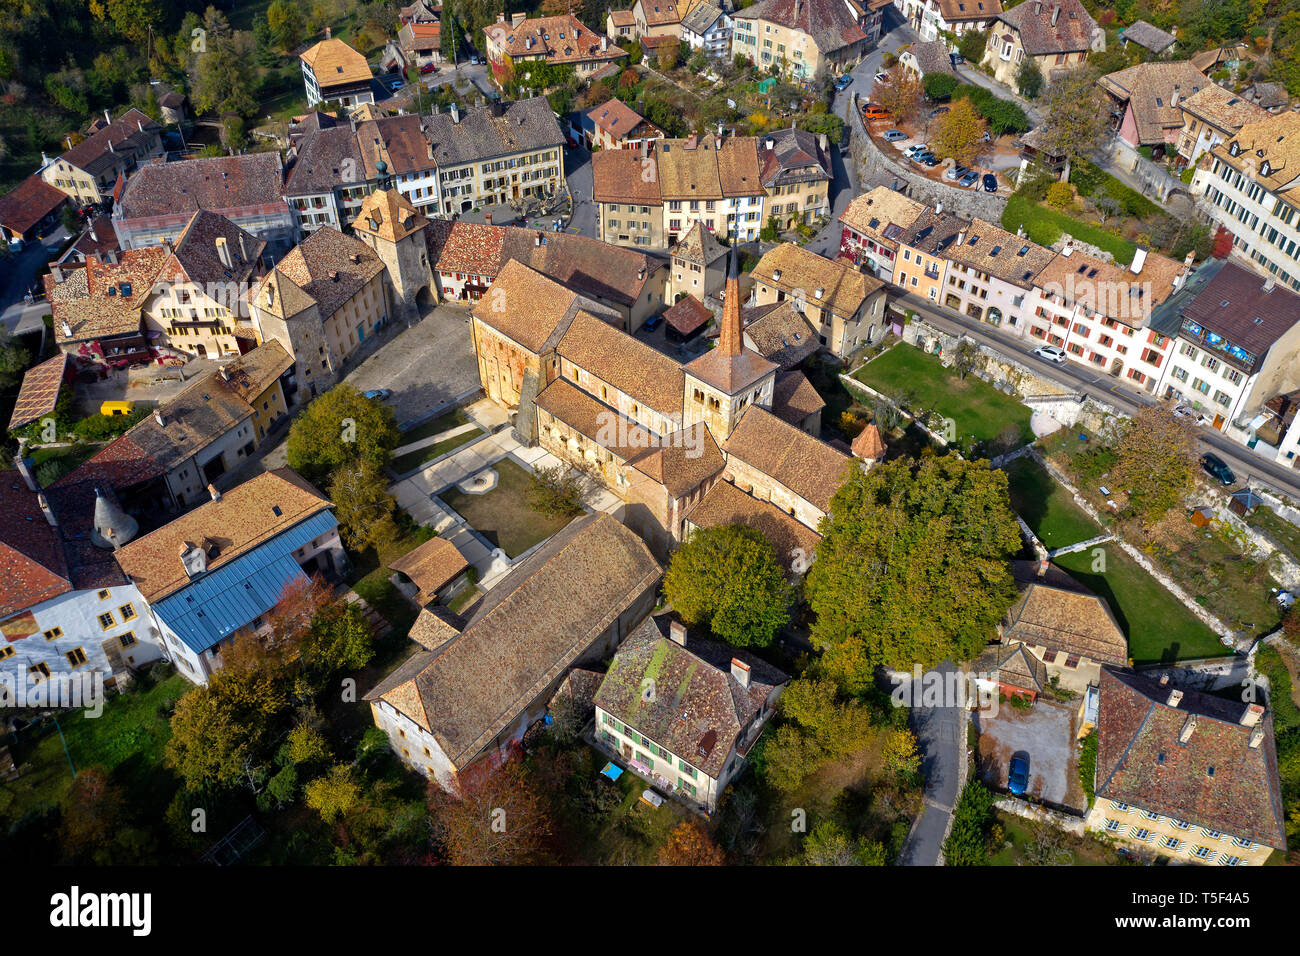 Romainmoitier with the church of the former Cluniac Romainmotier Abbey in the town center, Romainmôtier-Envy, canton of Vaud, Switzerland - Stock Image